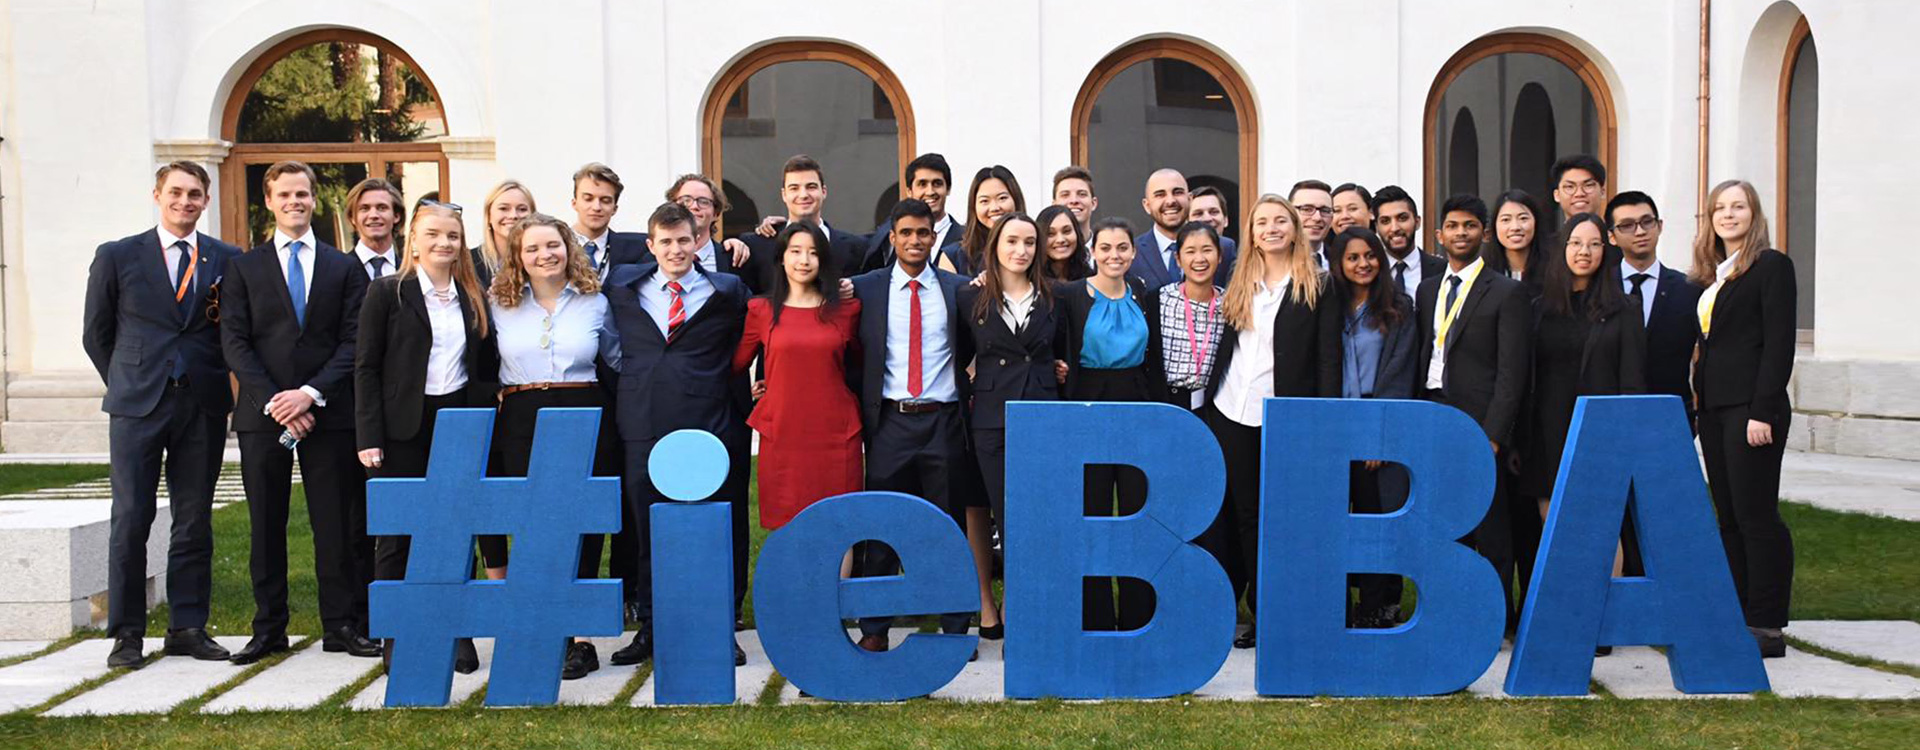 IE Business School BBA Business Challenge